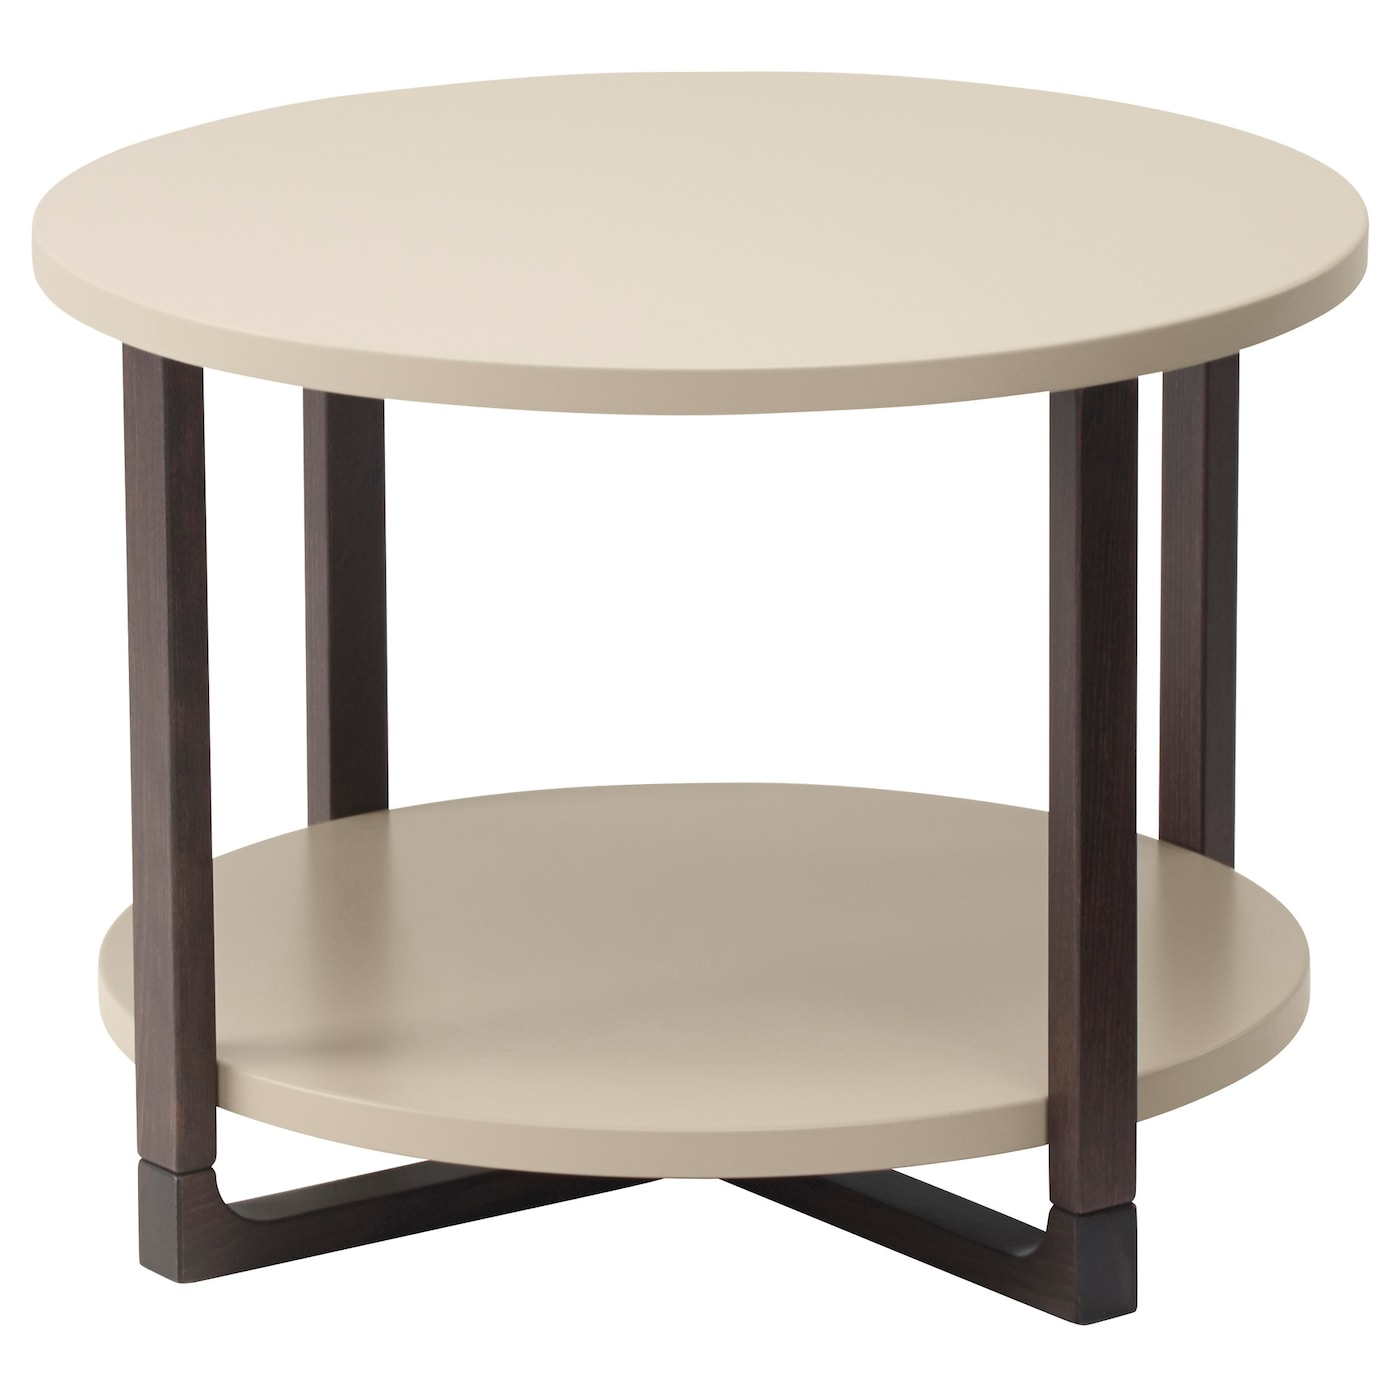 Rissna Side Table Beige 60 Cm Ikea